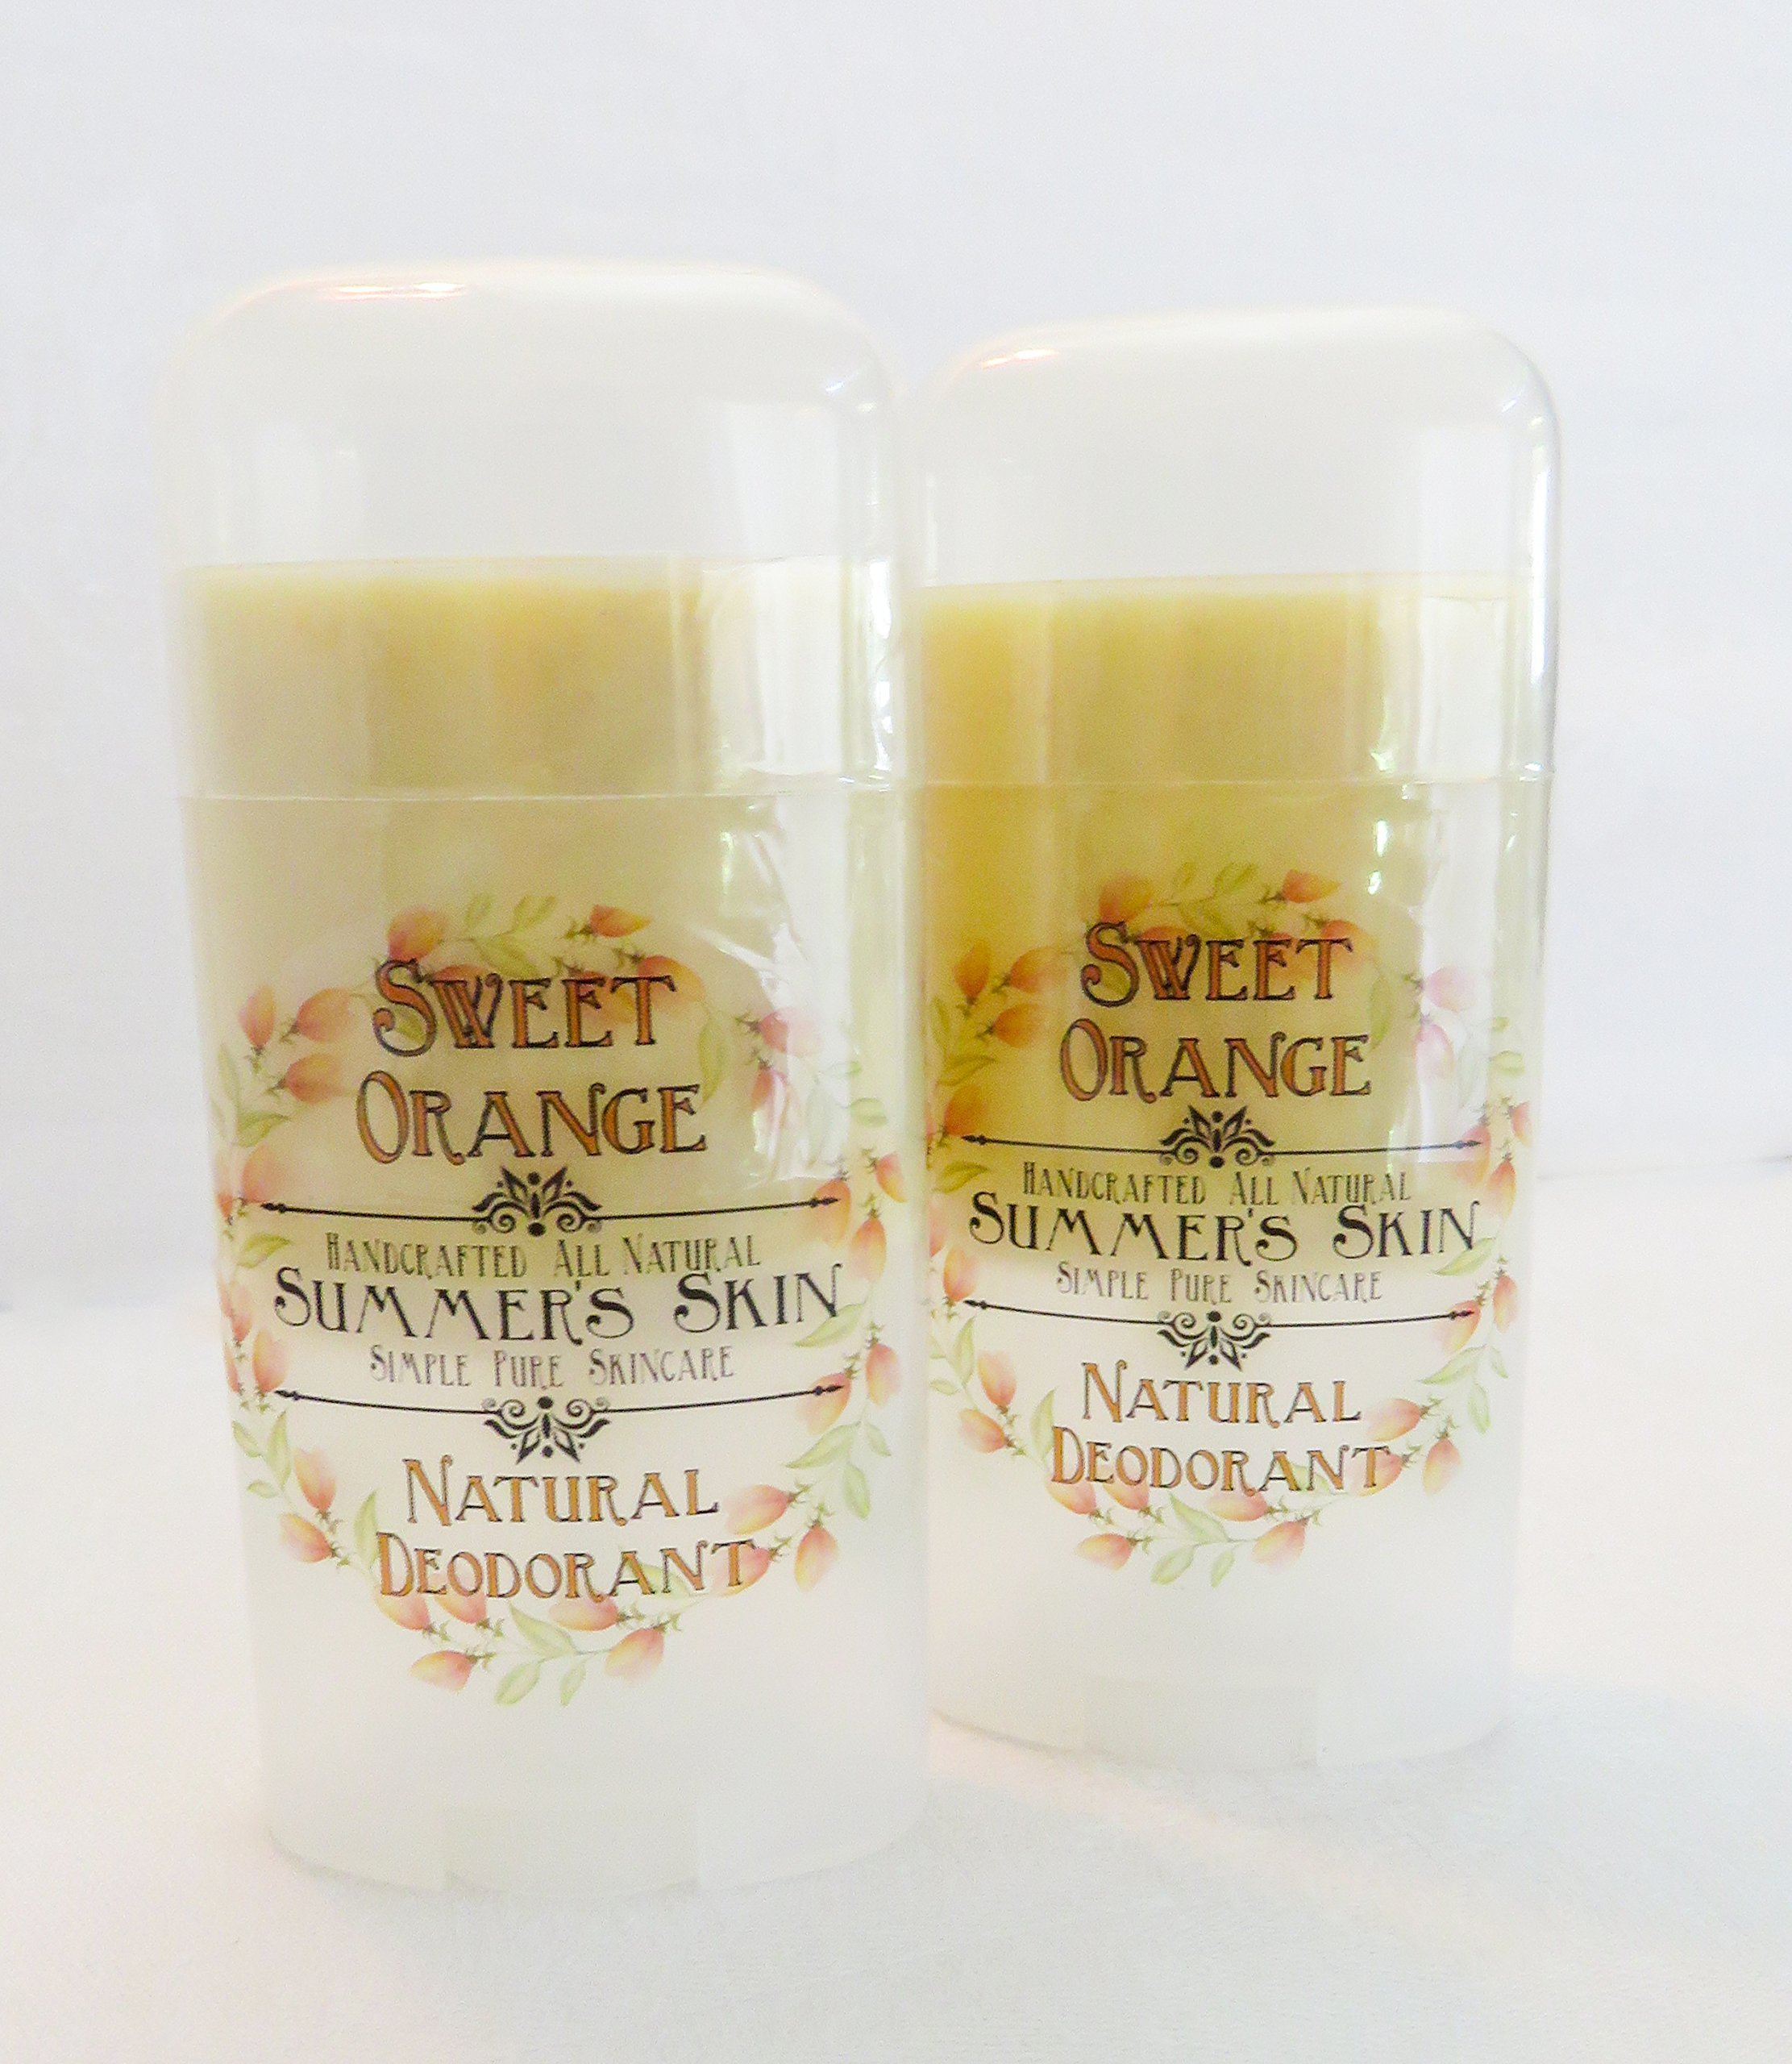 Sweet Orange Natural Deodorant by Summer's Skin